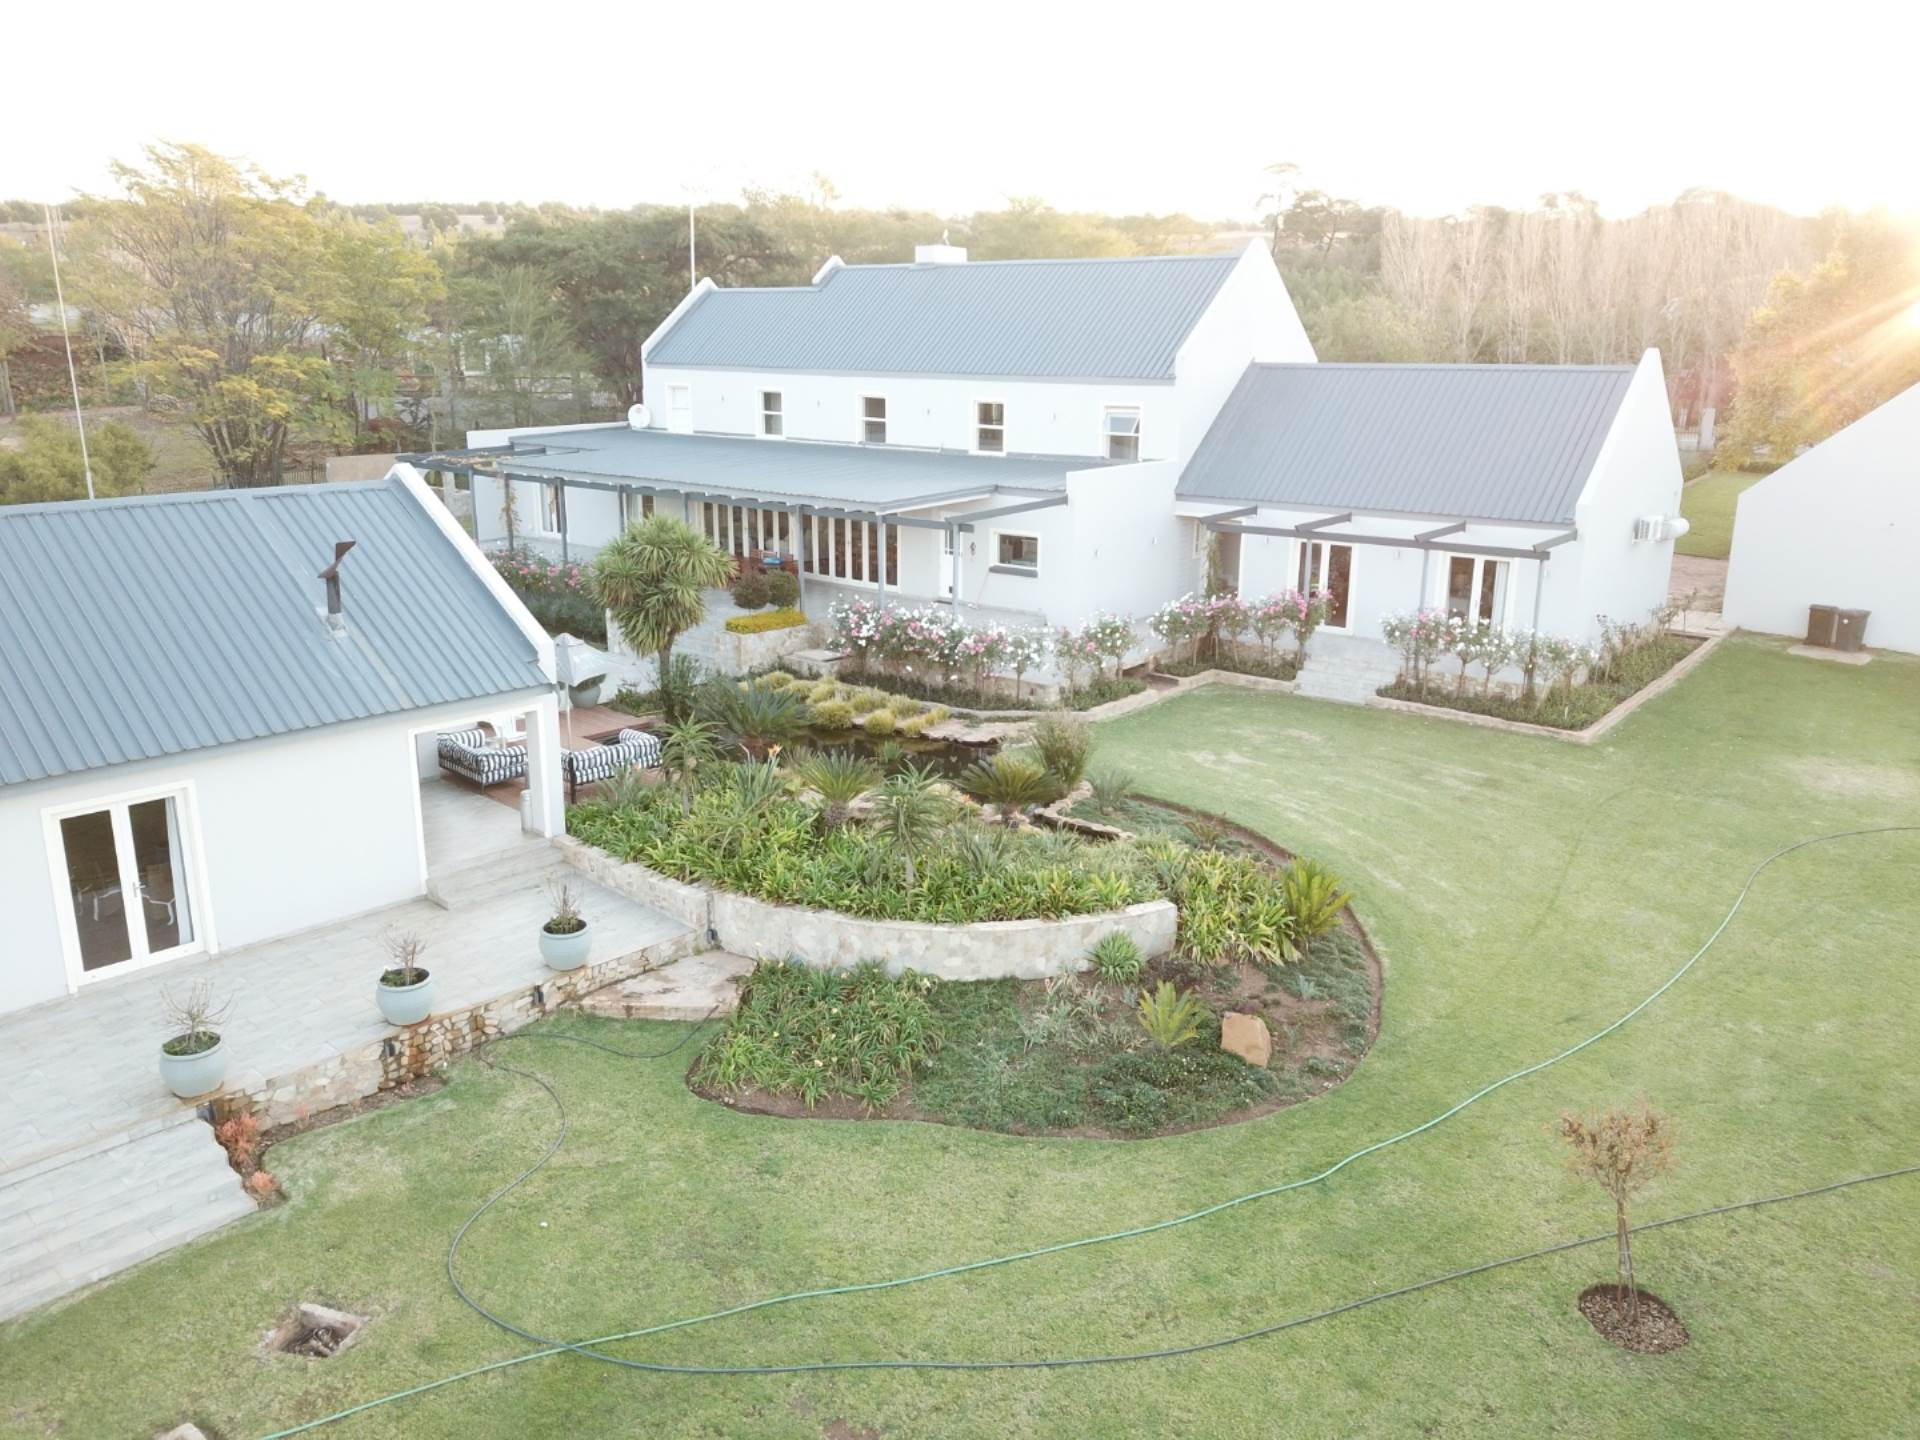 Property and Houses for sale in Mooikloof Equestrian Estate, House, 5 Bedrooms - ZAR 8,850,000